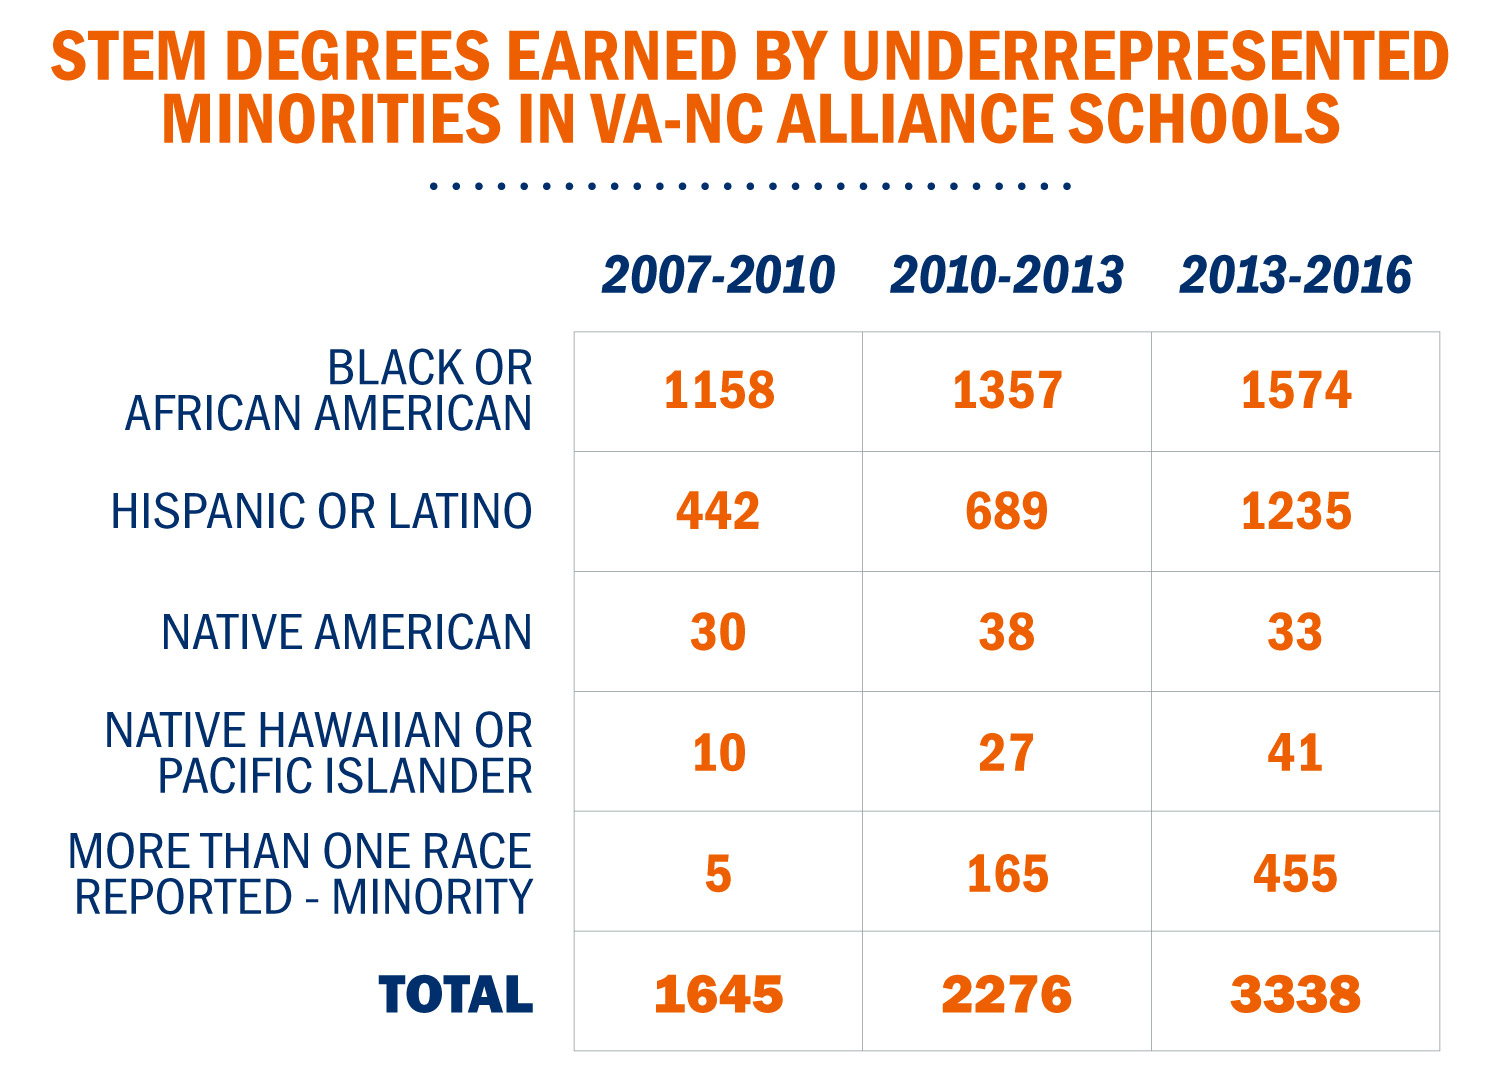 The table shows that the number of underrepresented students who earned bachelor's degrees in STEM disciplines at VA-NC Alliance schools more than doubled as of 2016. The total over the nine-year period comes to 7,259.